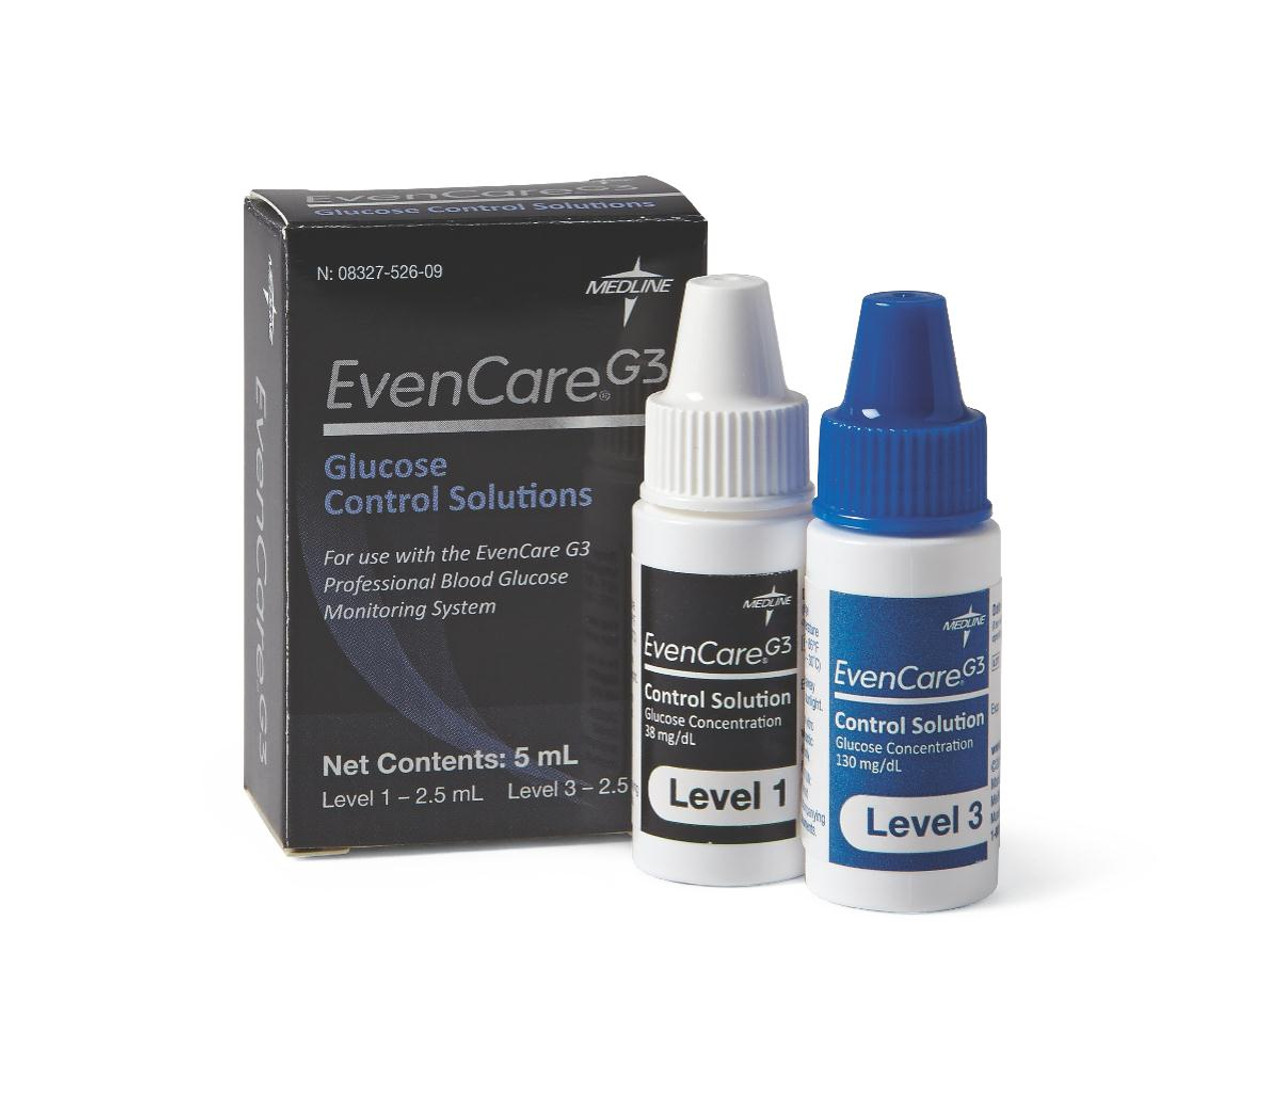 Hi/Lo Control Test Solutions for EvenCare G3 Glucometer